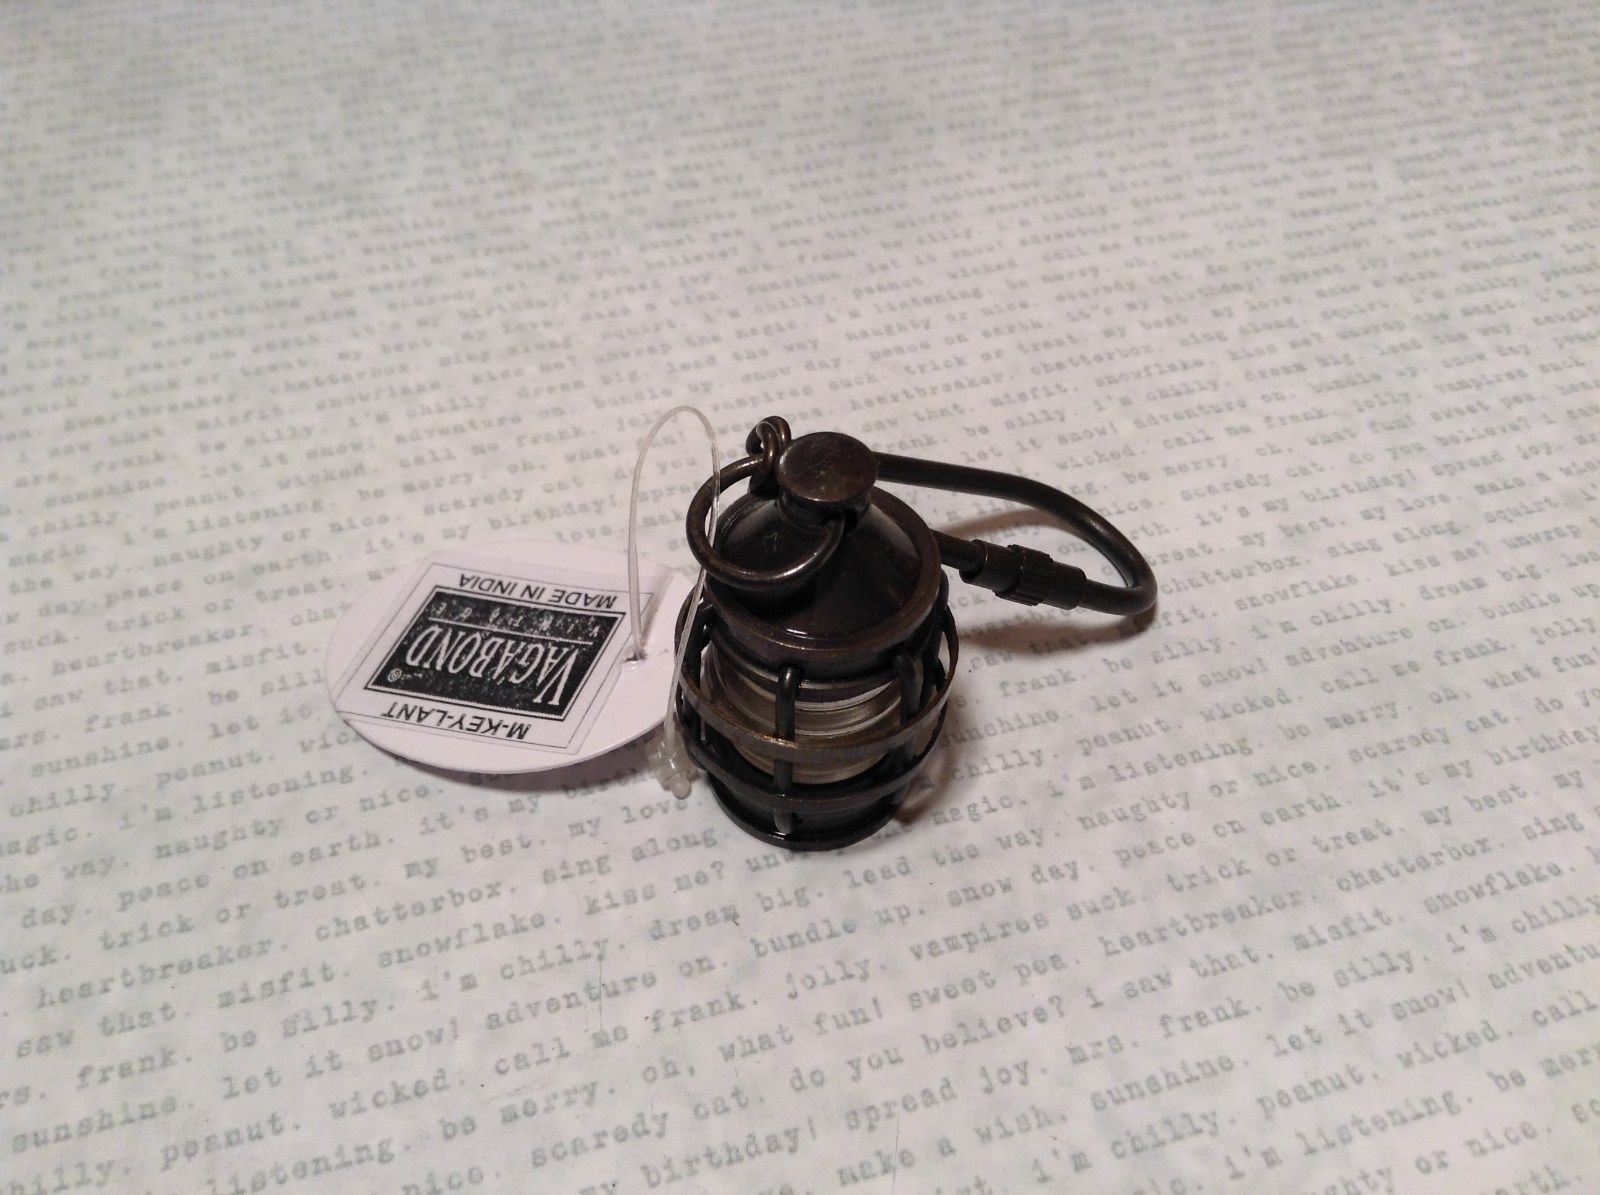 Small Lantern with Glass Globe Vagabond Keychain Small Carabineer Attached